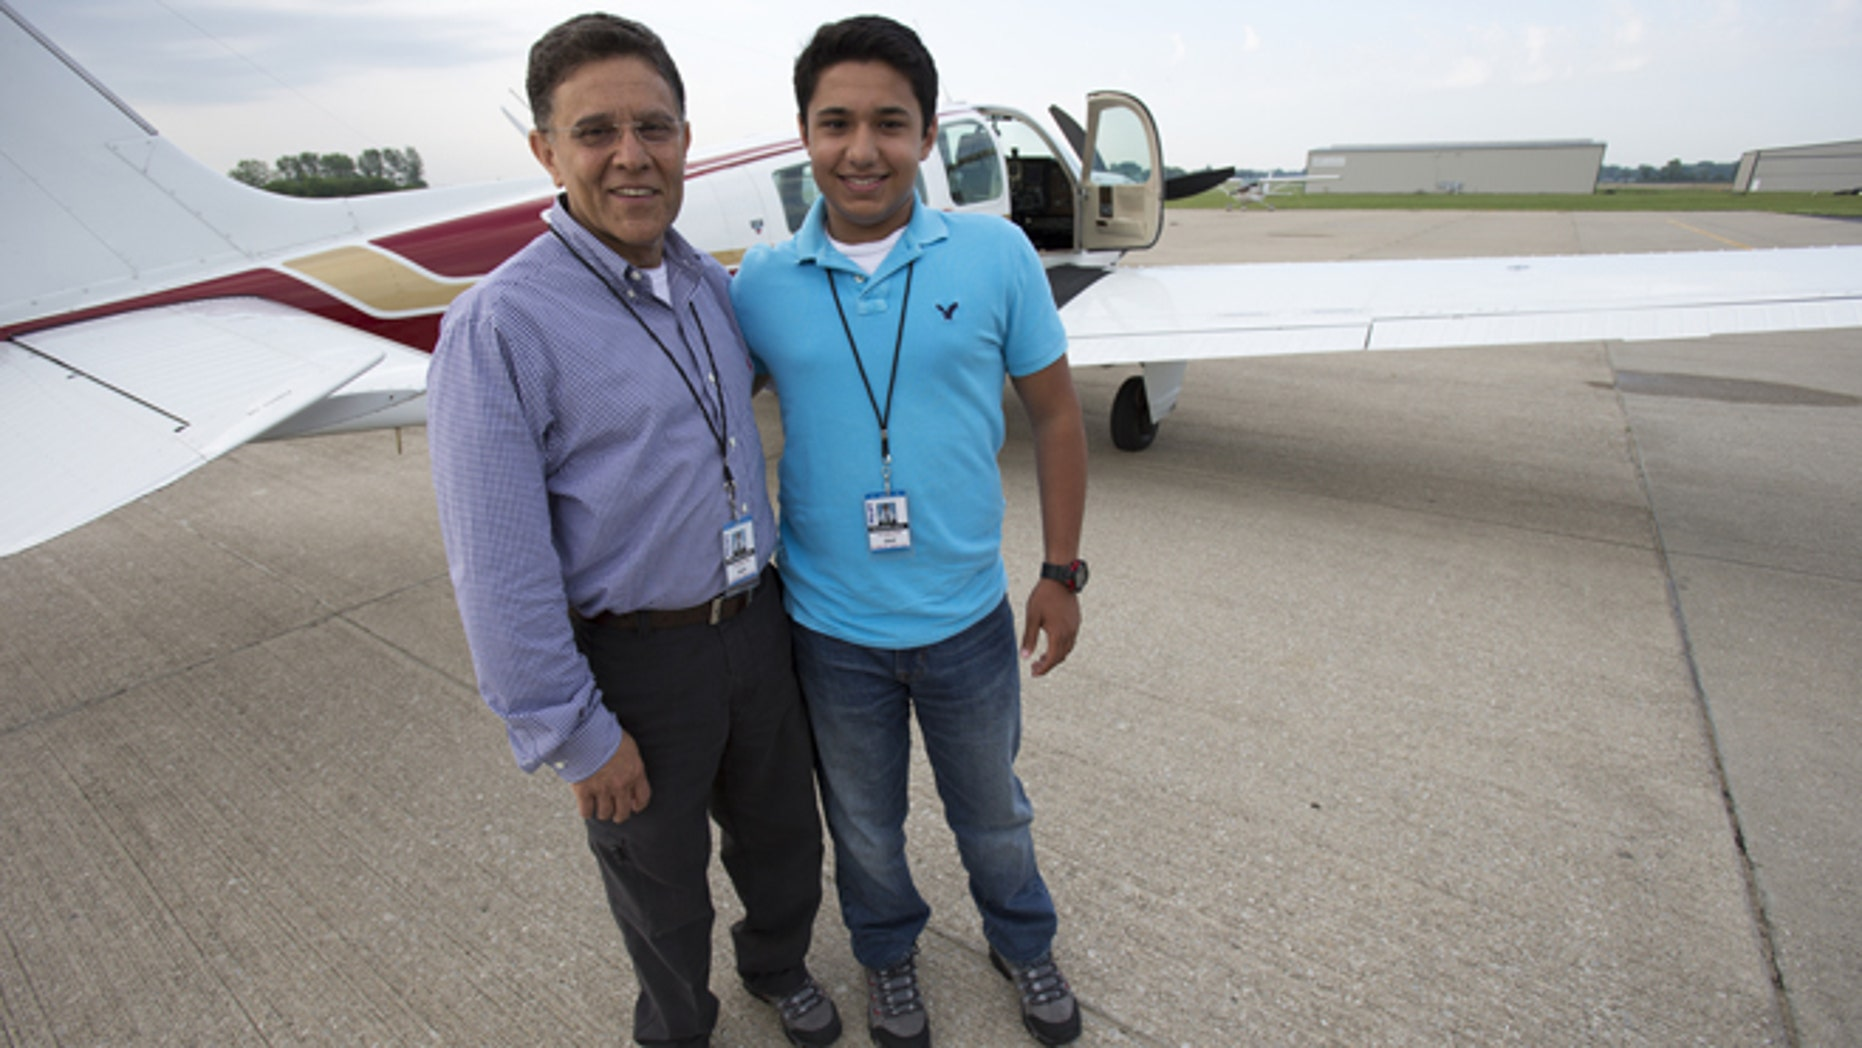 June 19, 2014: Babar Suleman and son Haris Suleman, 17, stand next to their plane at an airport in Greenwood, Ind. before taking off for an around-the-world flight. (AP/The Indianapolis Star)